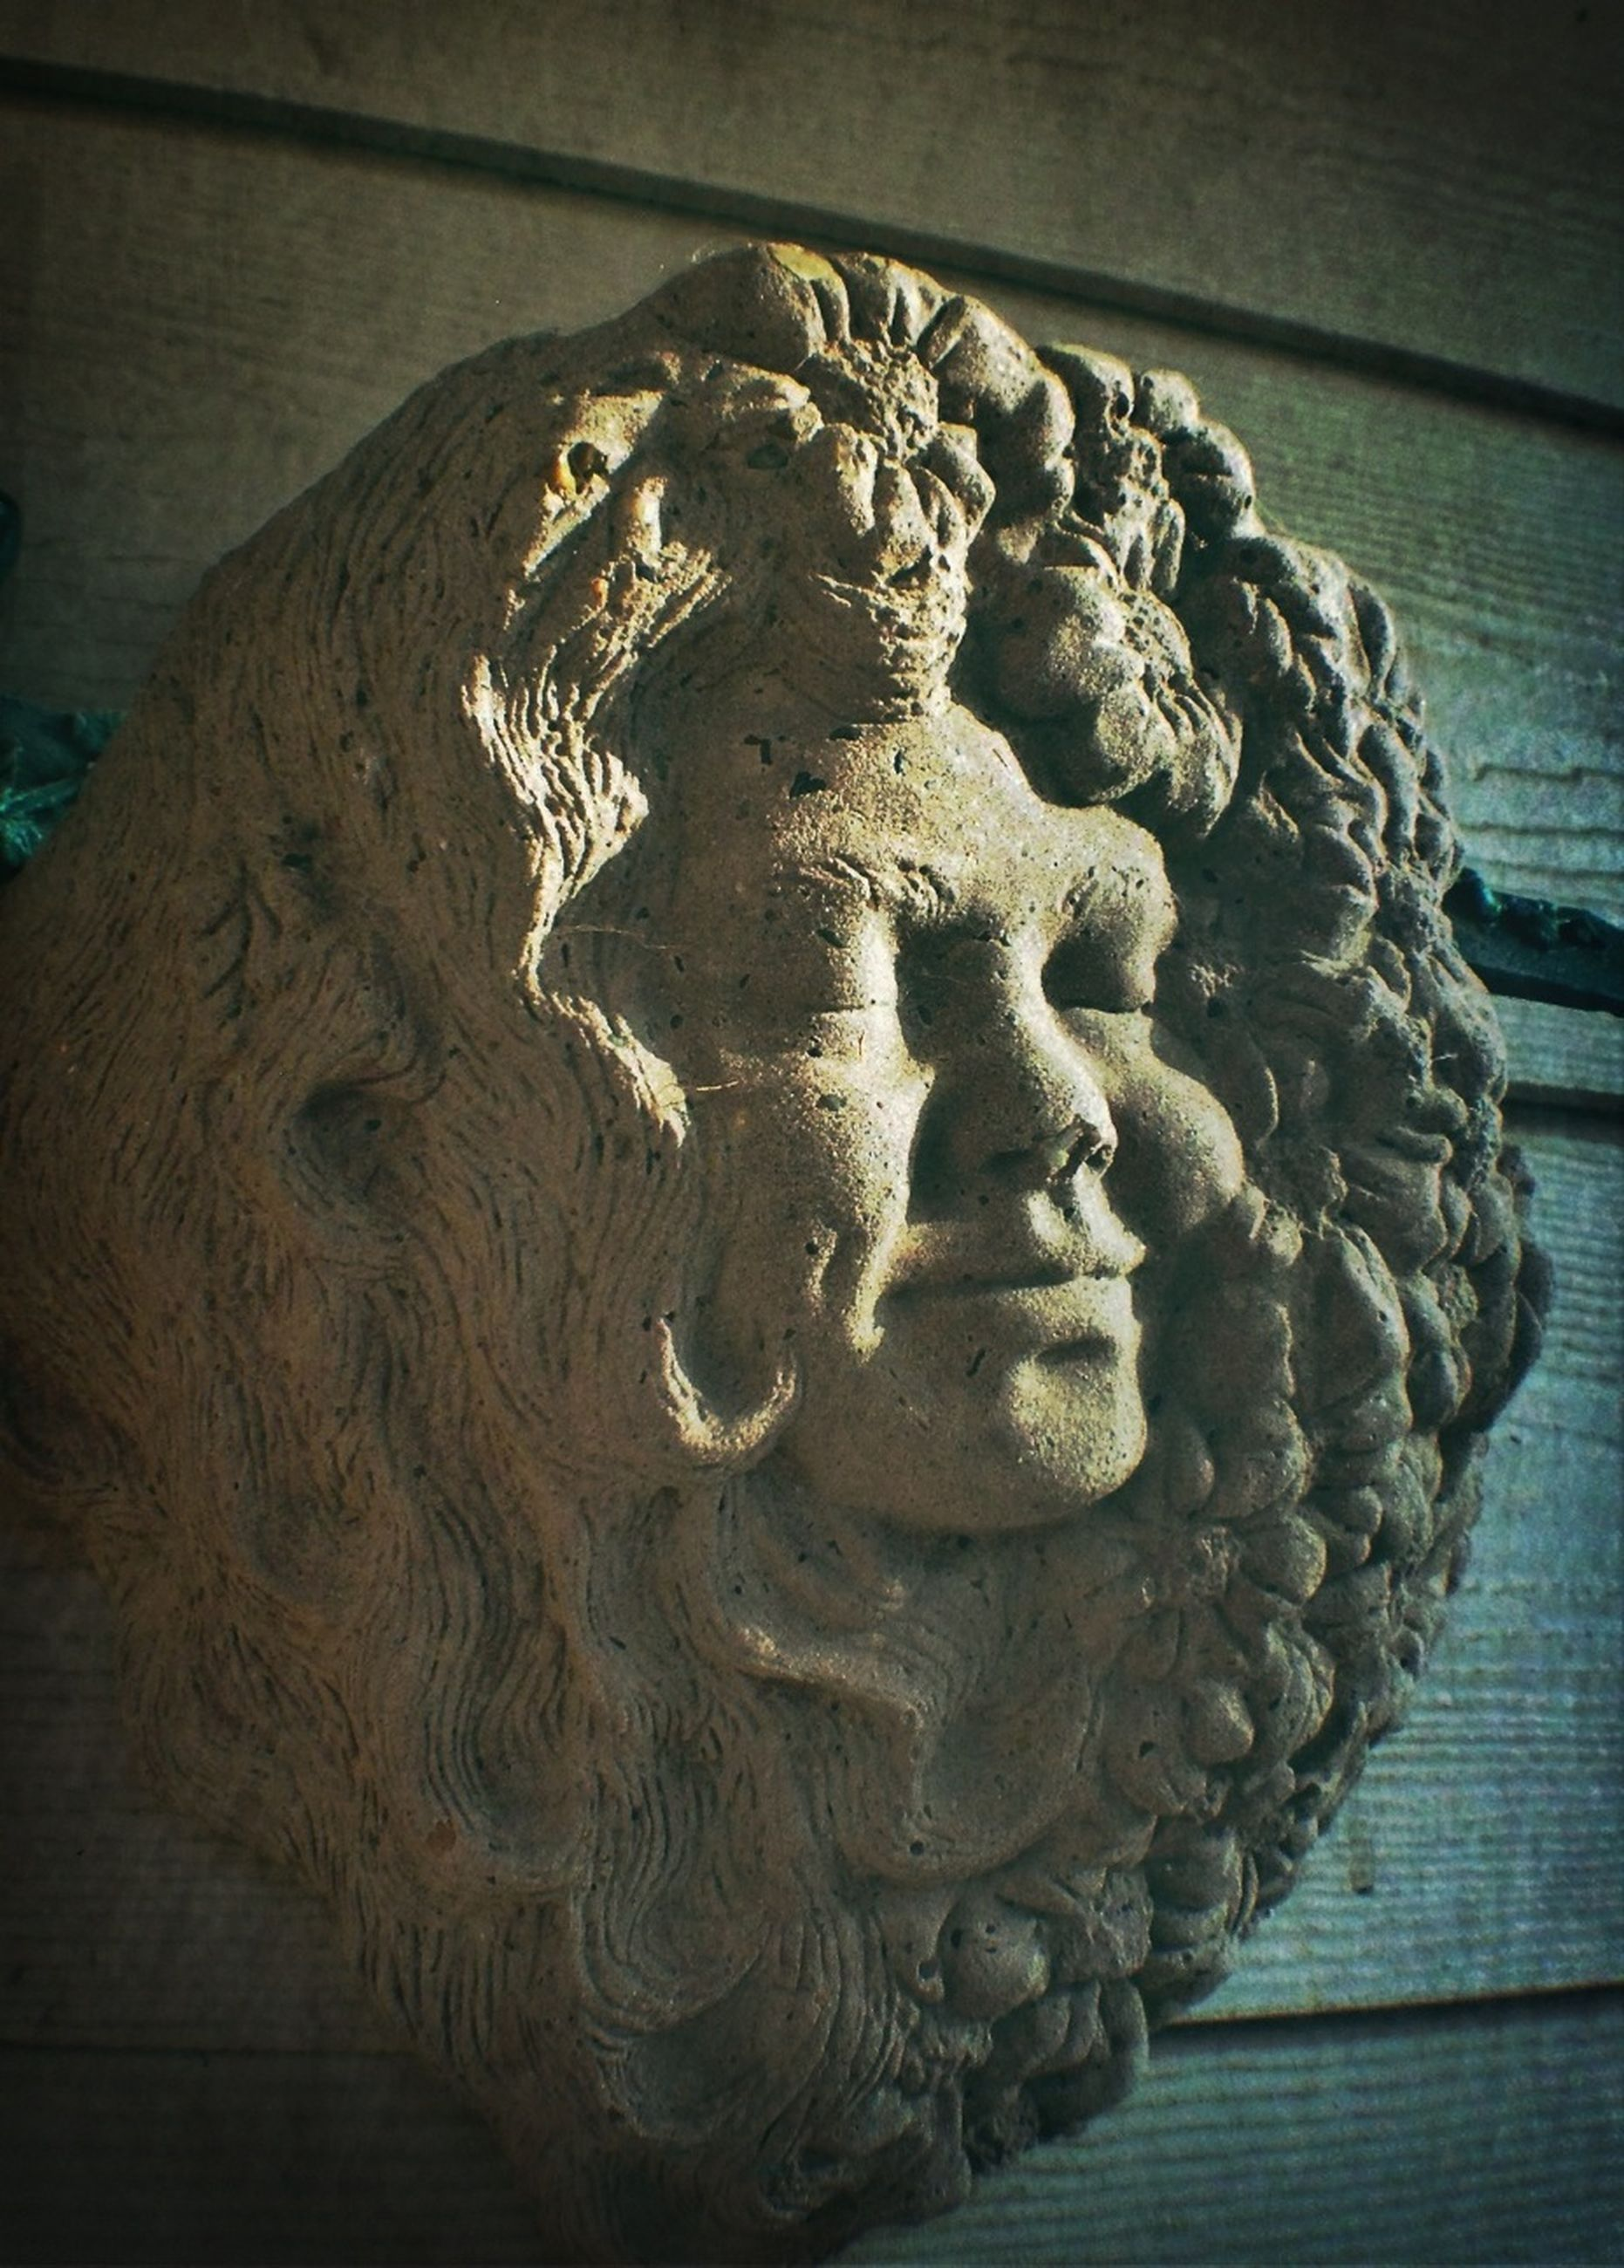 art and craft, art, creativity, human representation, sculpture, indoors, statue, close-up, carving - craft product, animal representation, craft, no people, pattern, carving, textured, auto post production filter, still life, stone material